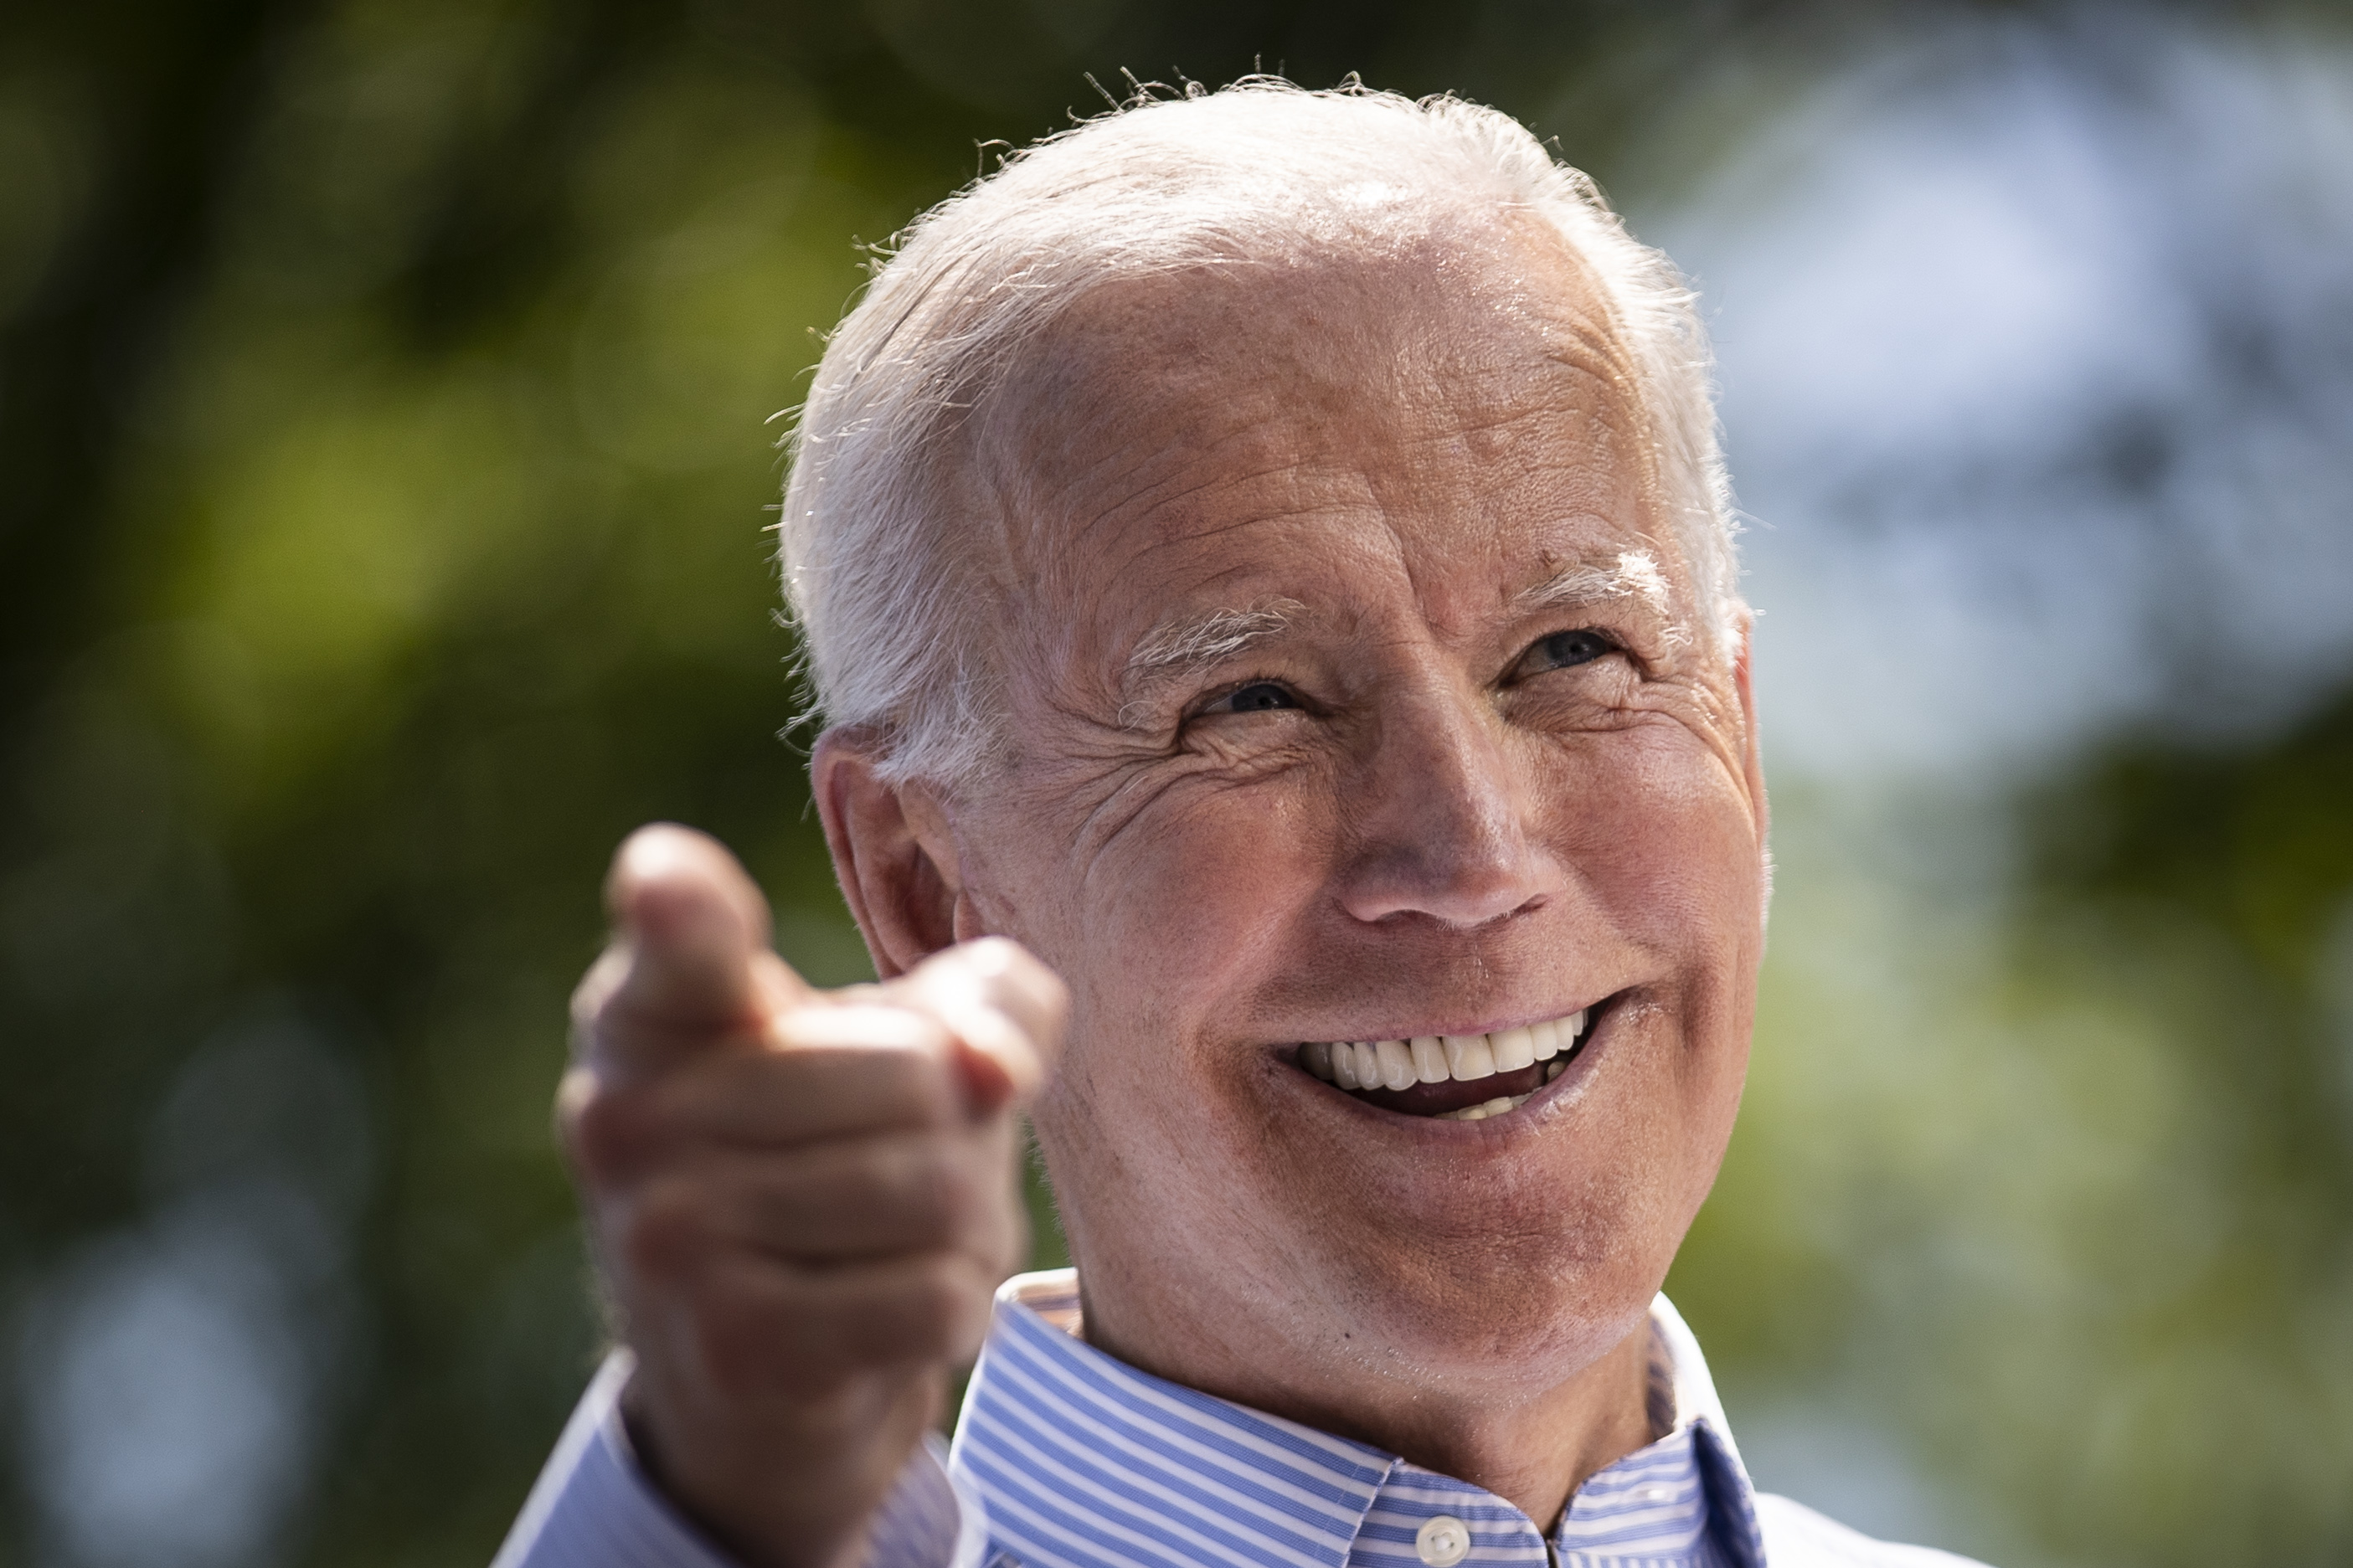 Democratic presidential candidate, former US Vice President Joe Biden, speaks during a campaign kickoff rally, May 18, 2019 in Philadelphia, Pennsylvania.